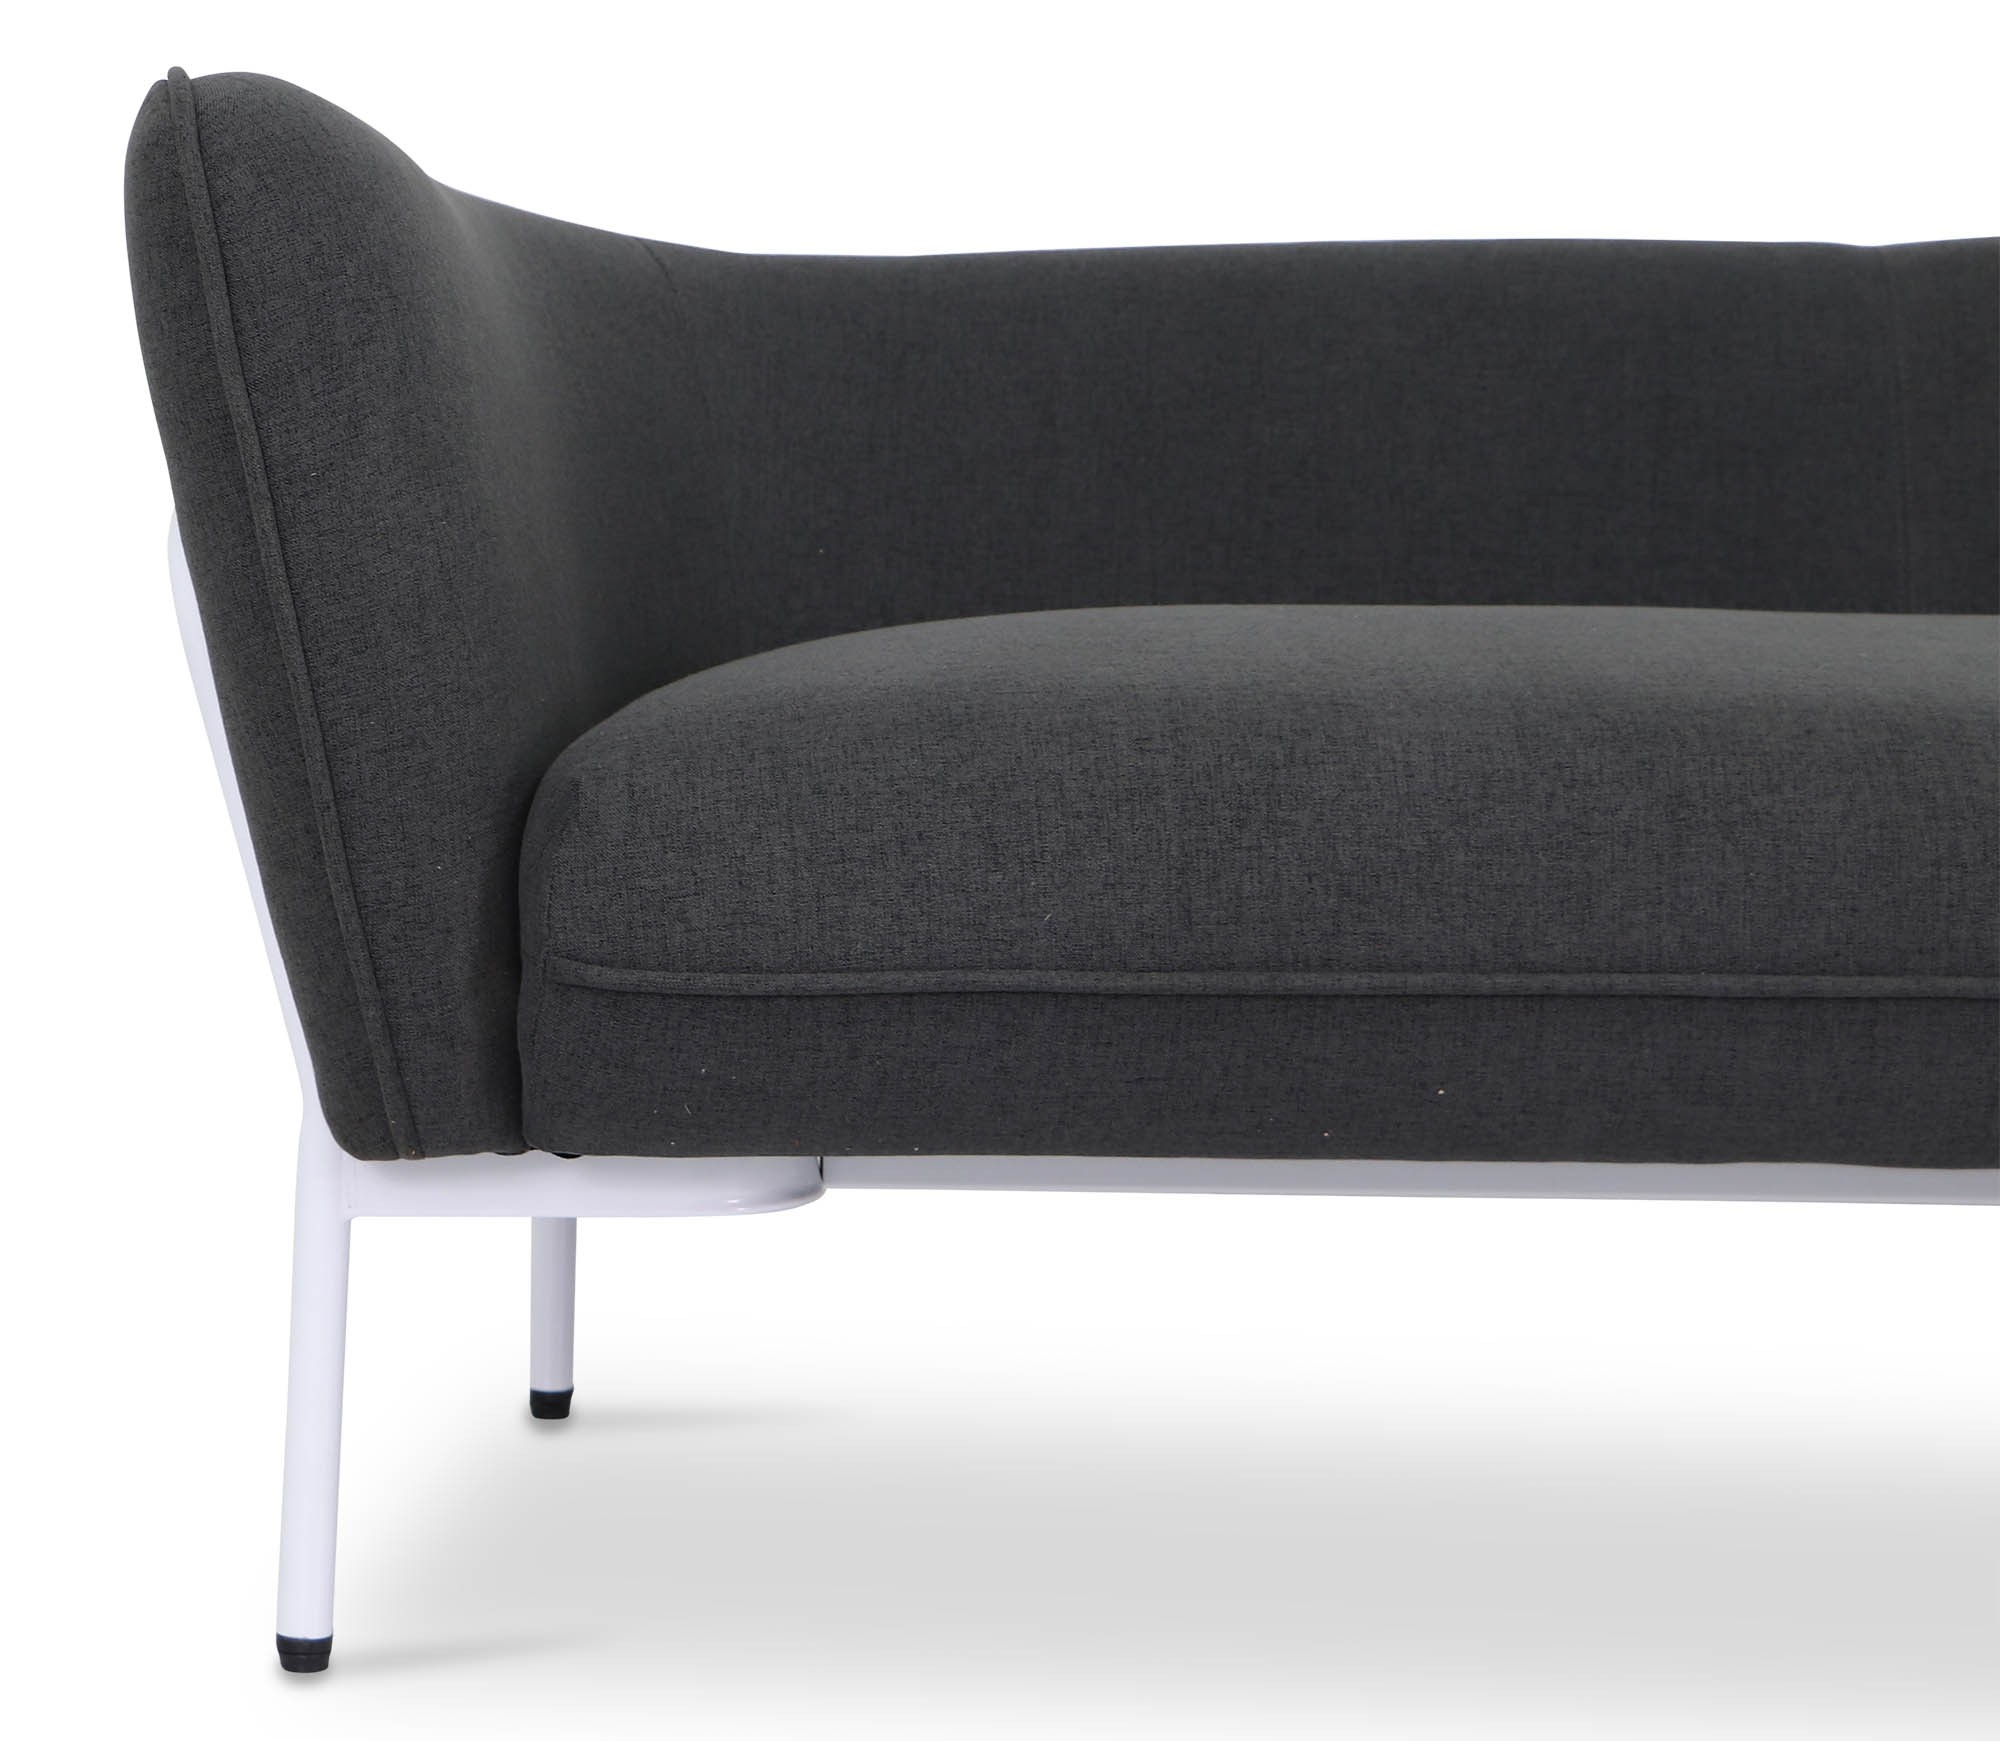 Karen Sofa In Dark Grey With White Iron Stand | Furniture & Home In Karen Sofa Chairs (View 4 of 25)